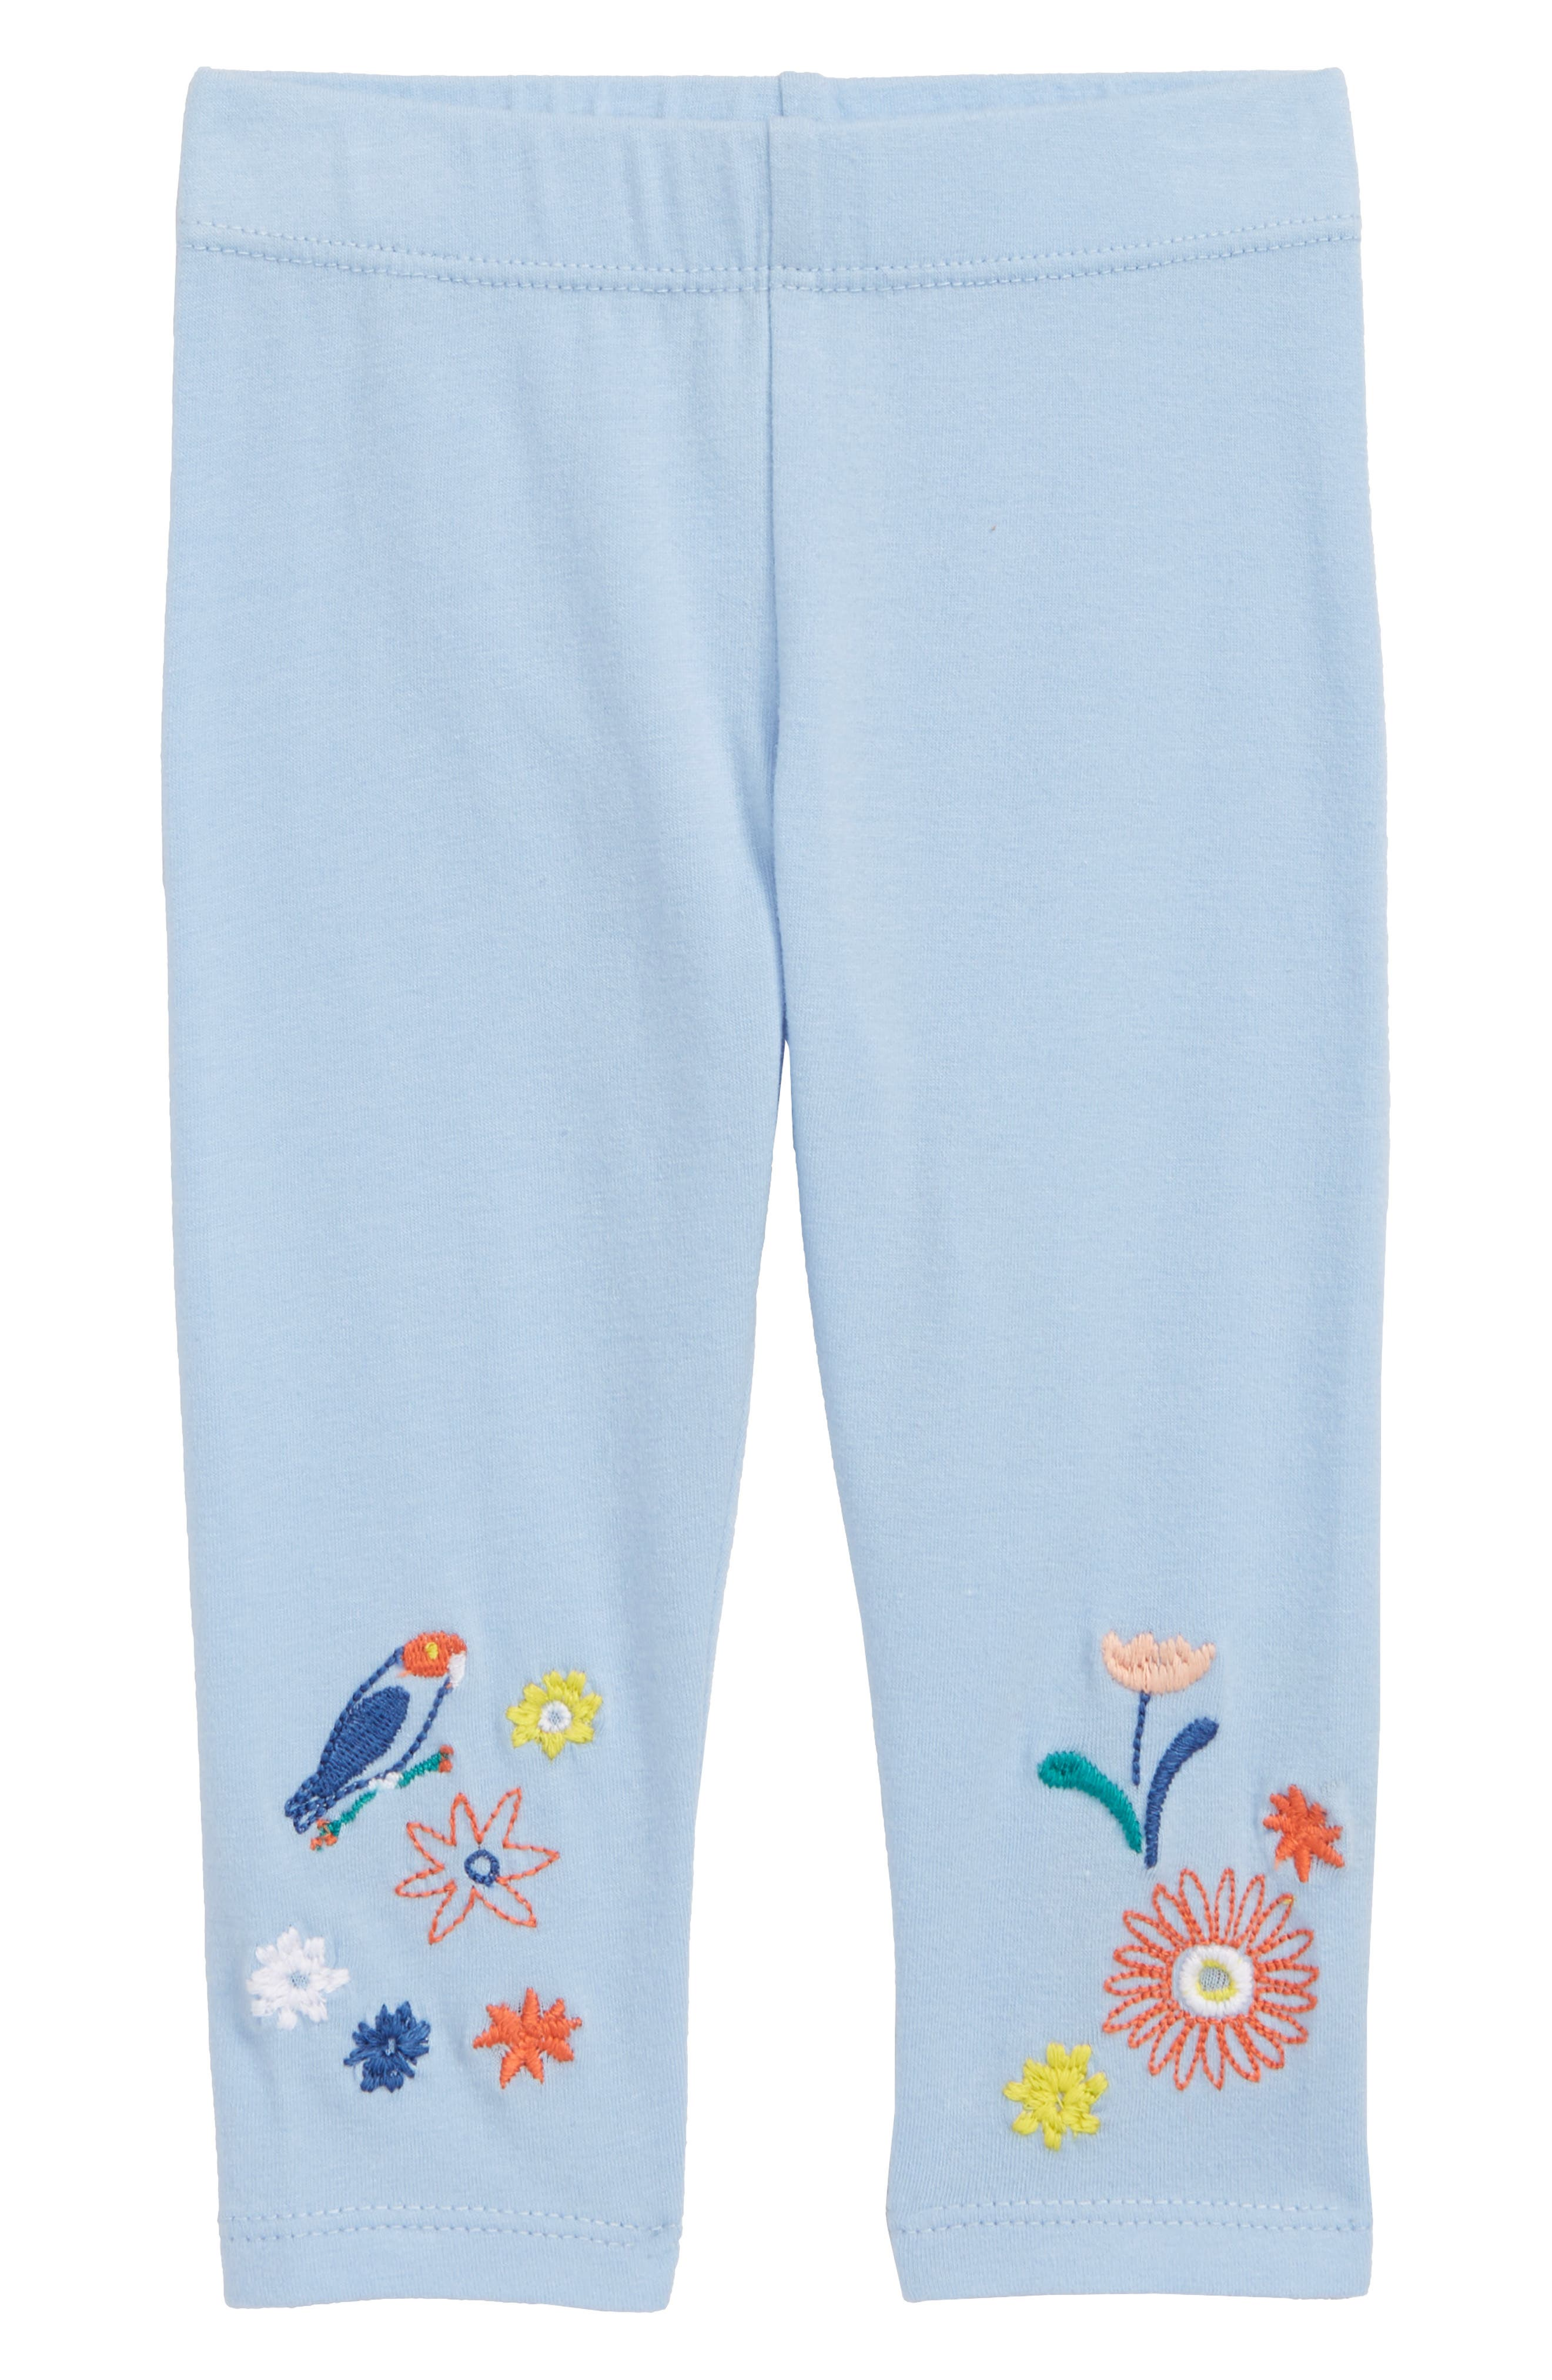 Embroidered Leggings,                         Main,                         color, Blue Thread